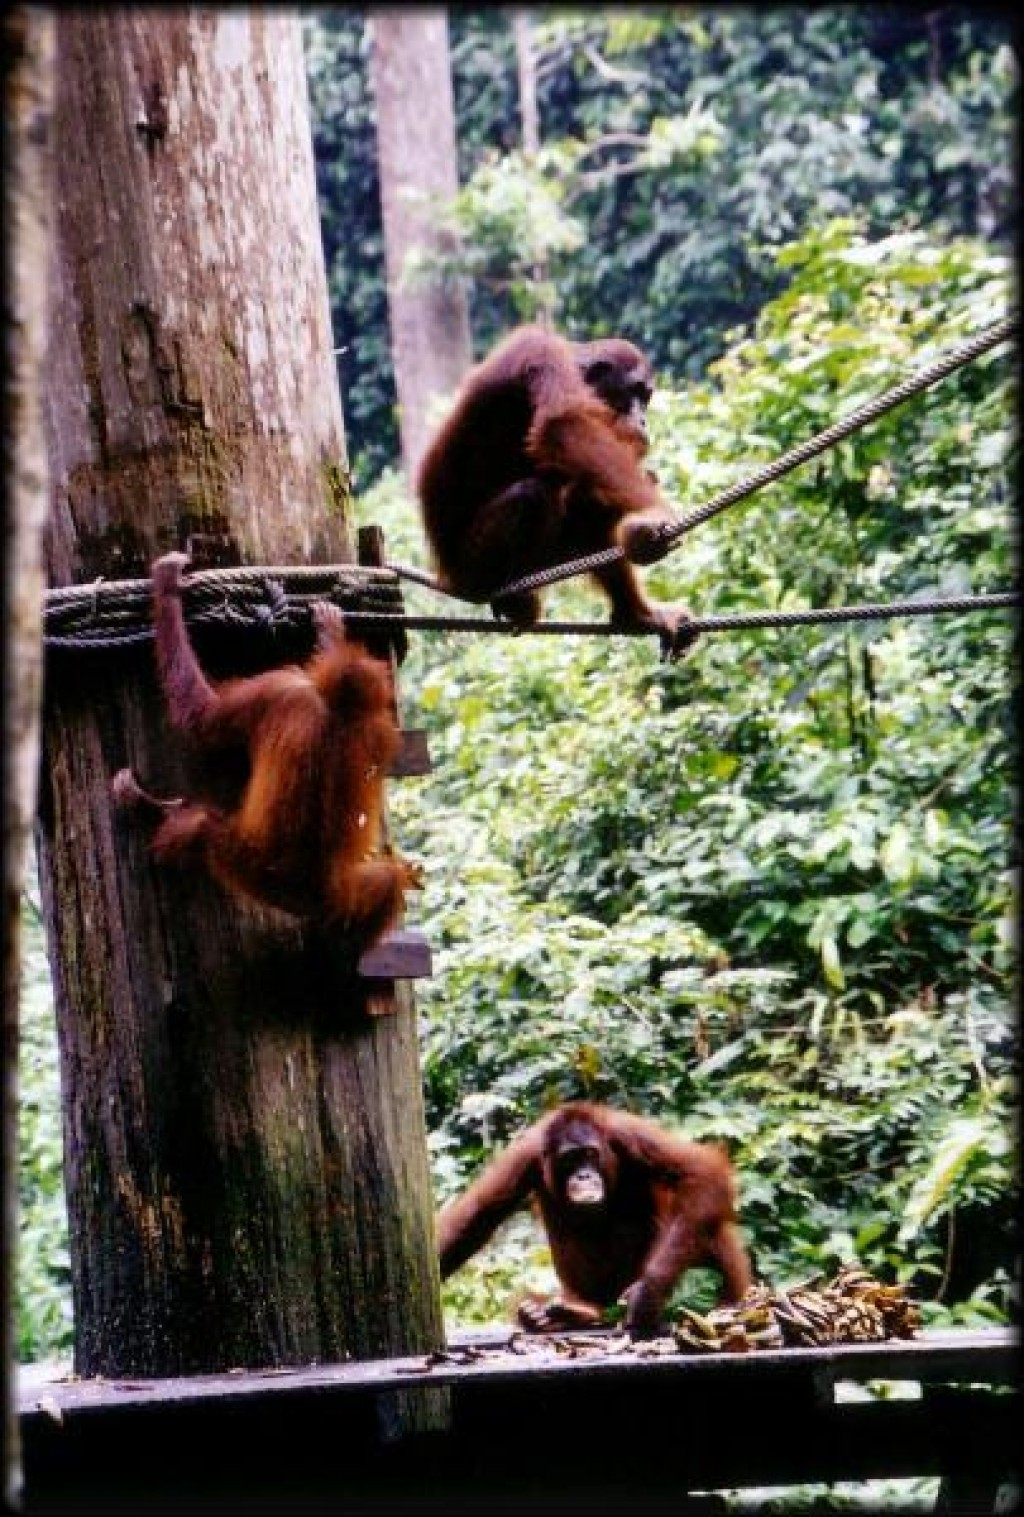 We flew to Sandakan on the island of Borneo to see the Sepilok Orangutan Reserve / Sepilok Rehabilitation Center. It was one of the highlights of our trip.